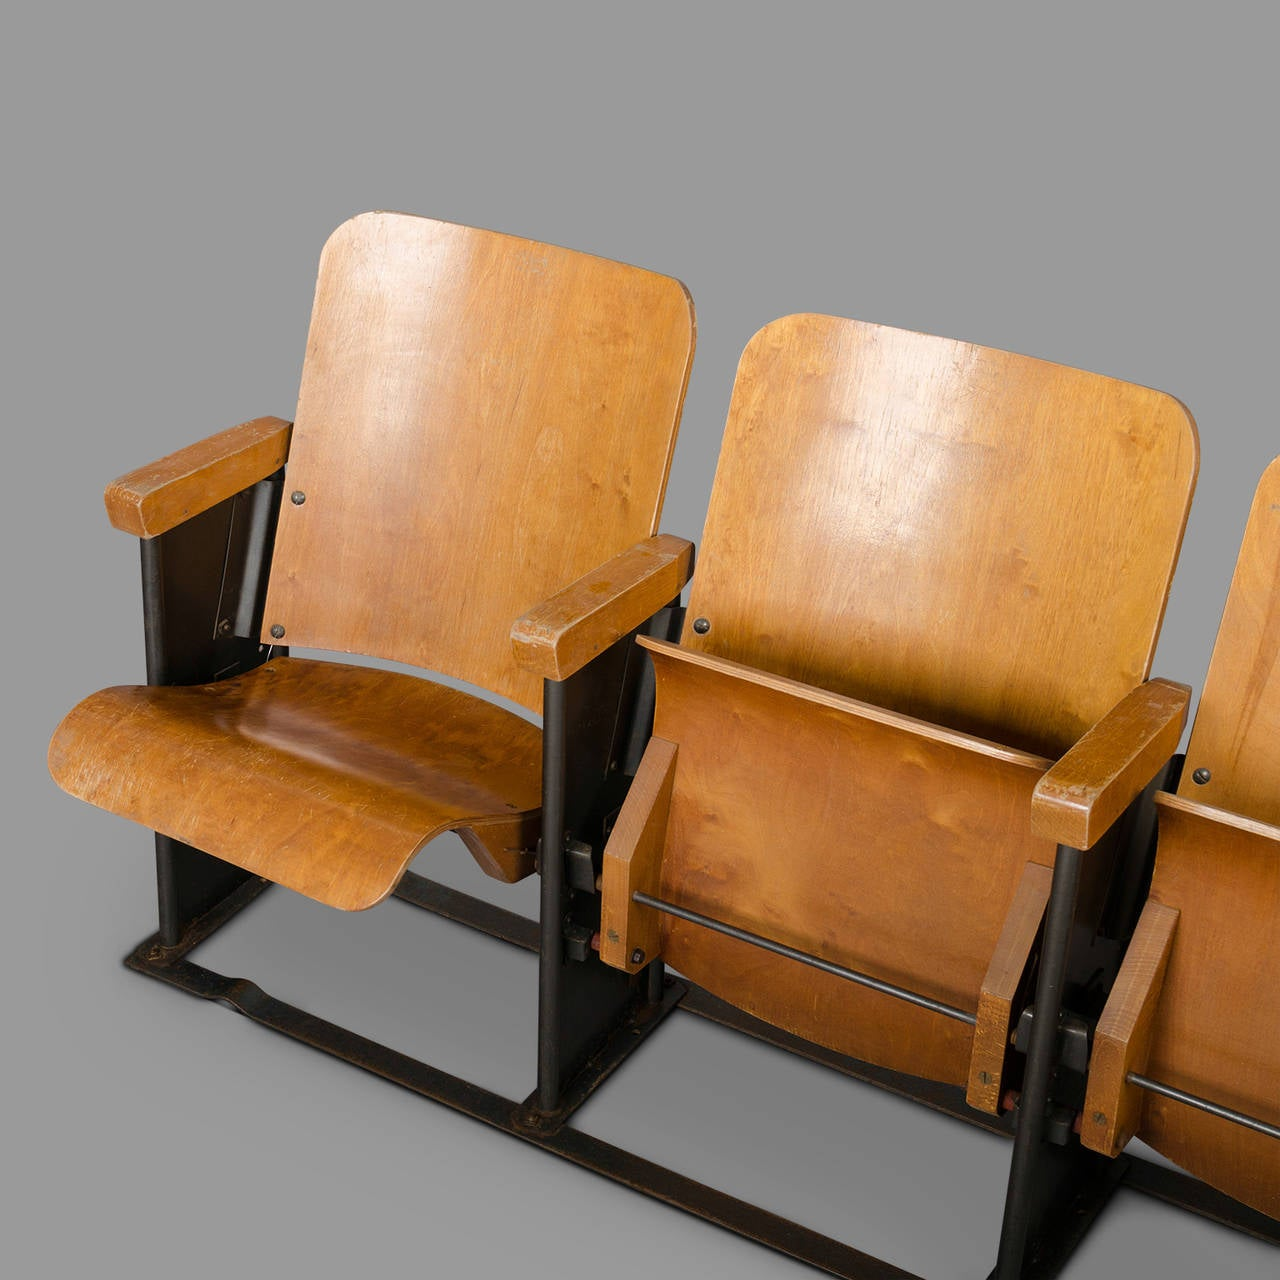 movie chairs for sale sectional chair covers 1950s theater armchairs from a military base at 1stdibs